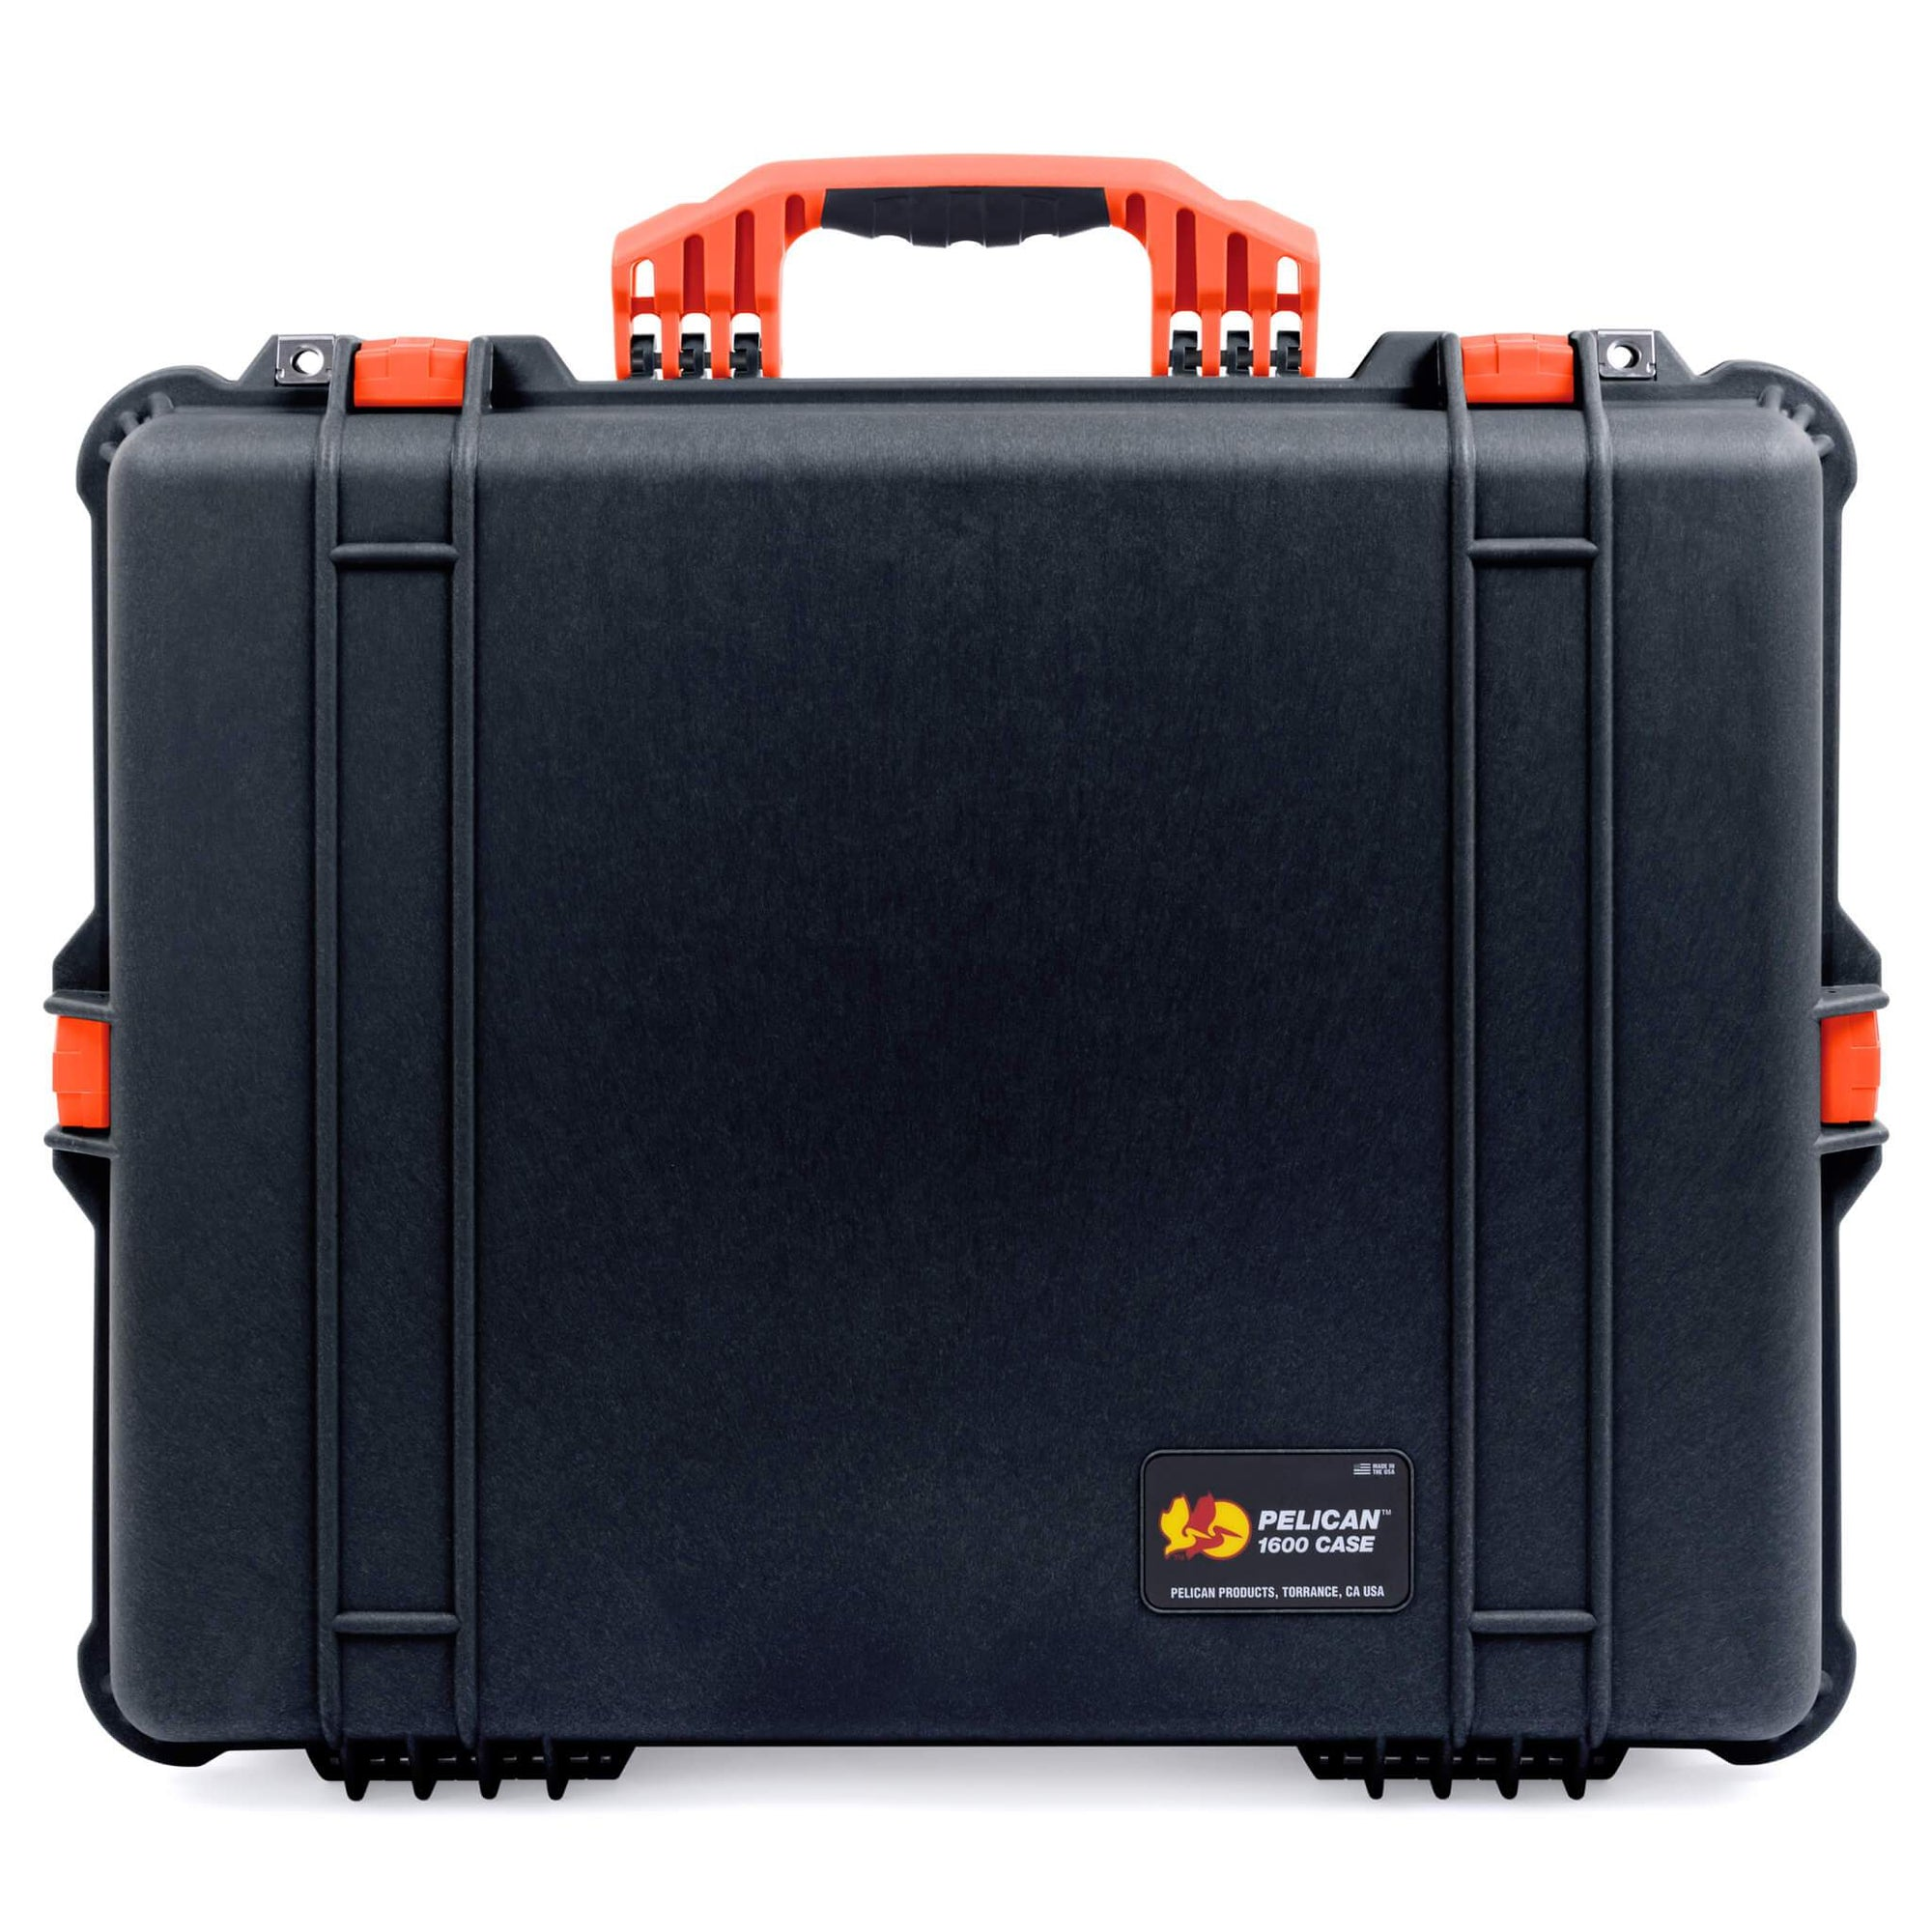 Pelican 1600 Case, Black with Orange Handle & Latches